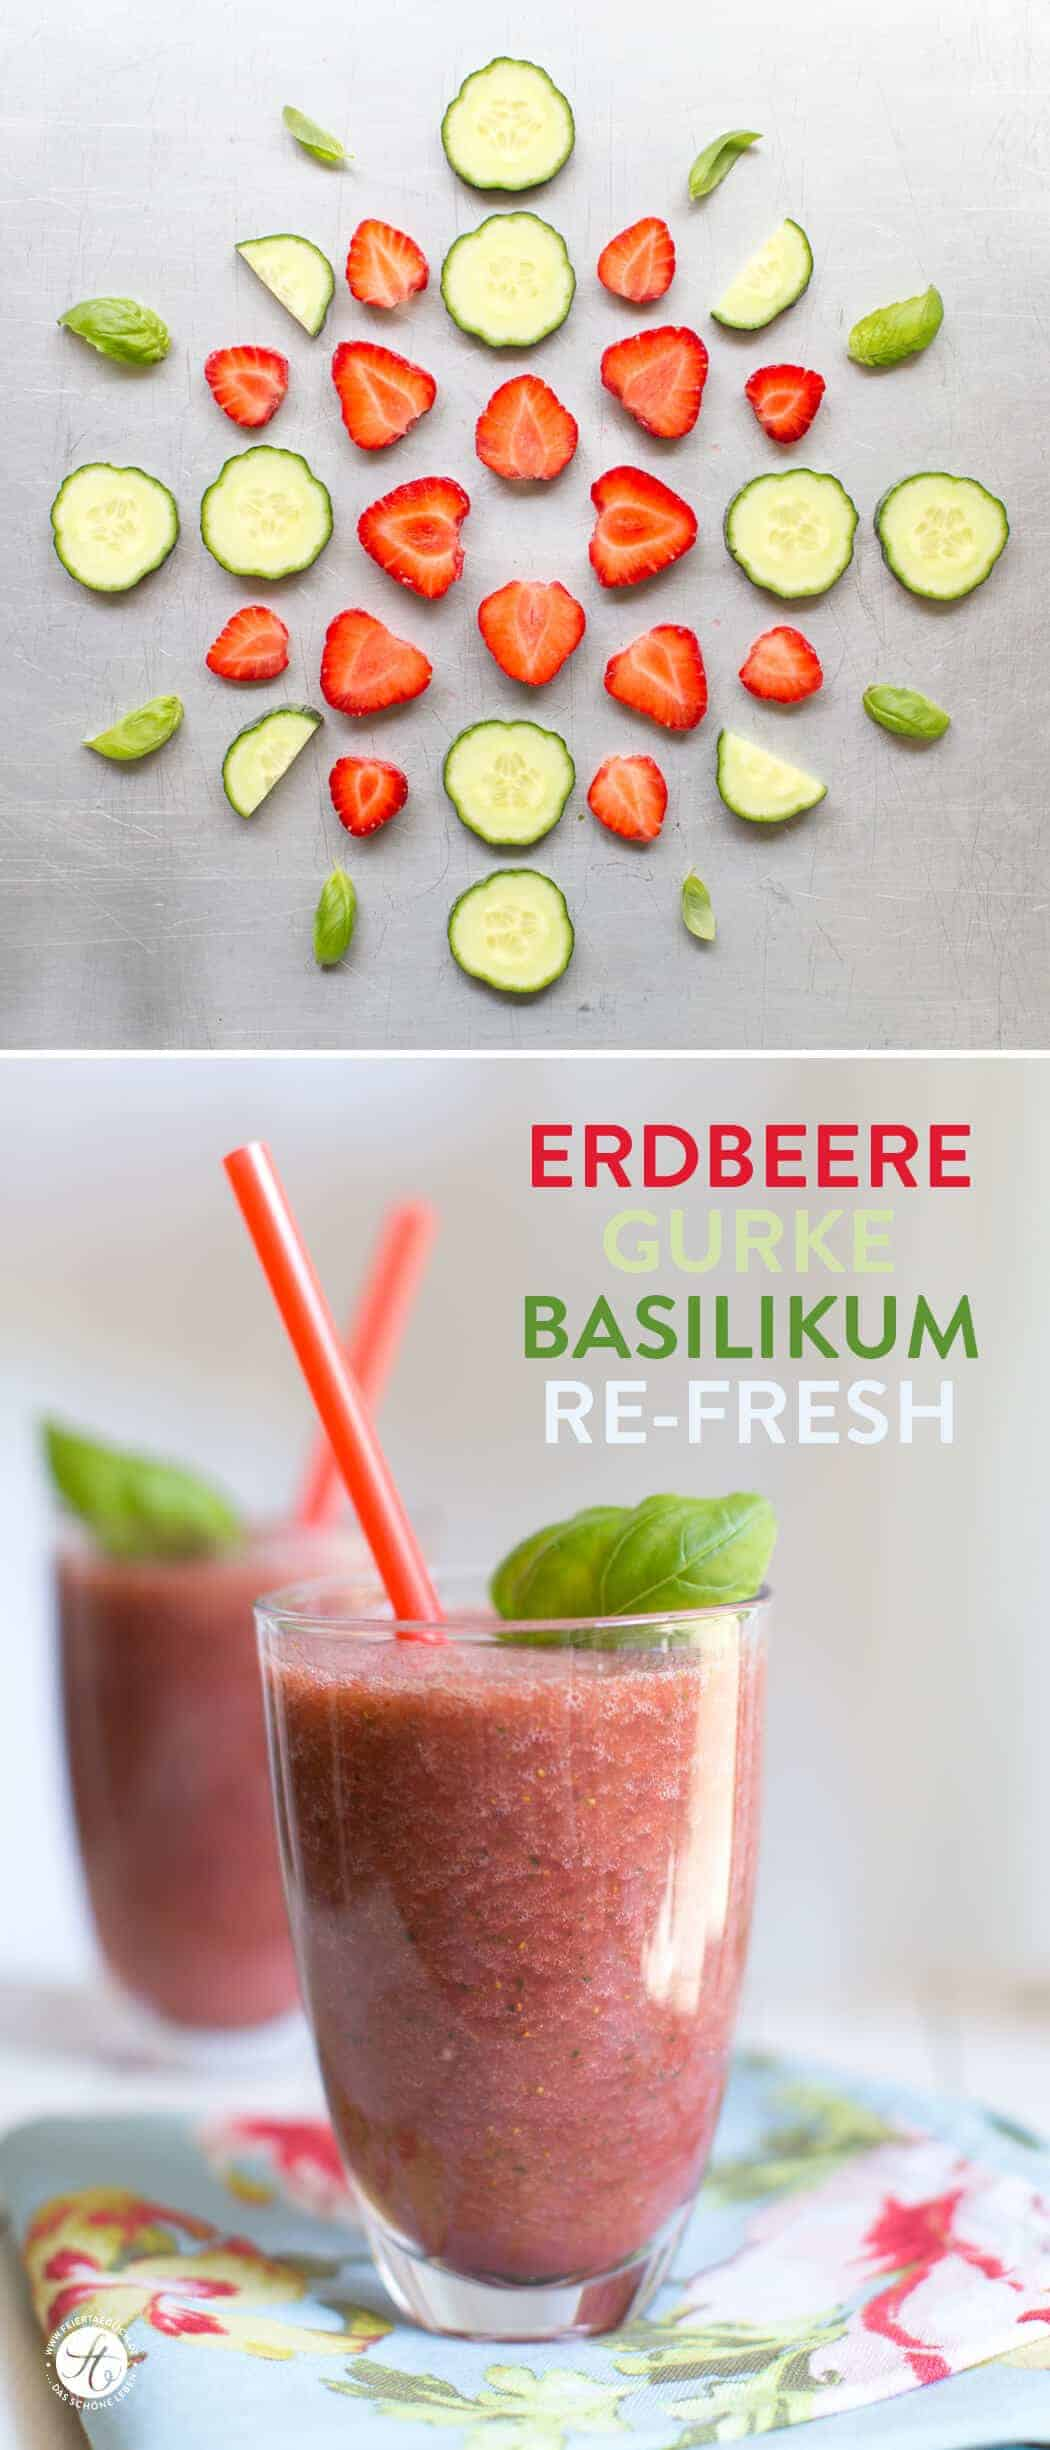 Strawberry and Cucumber Smoothie